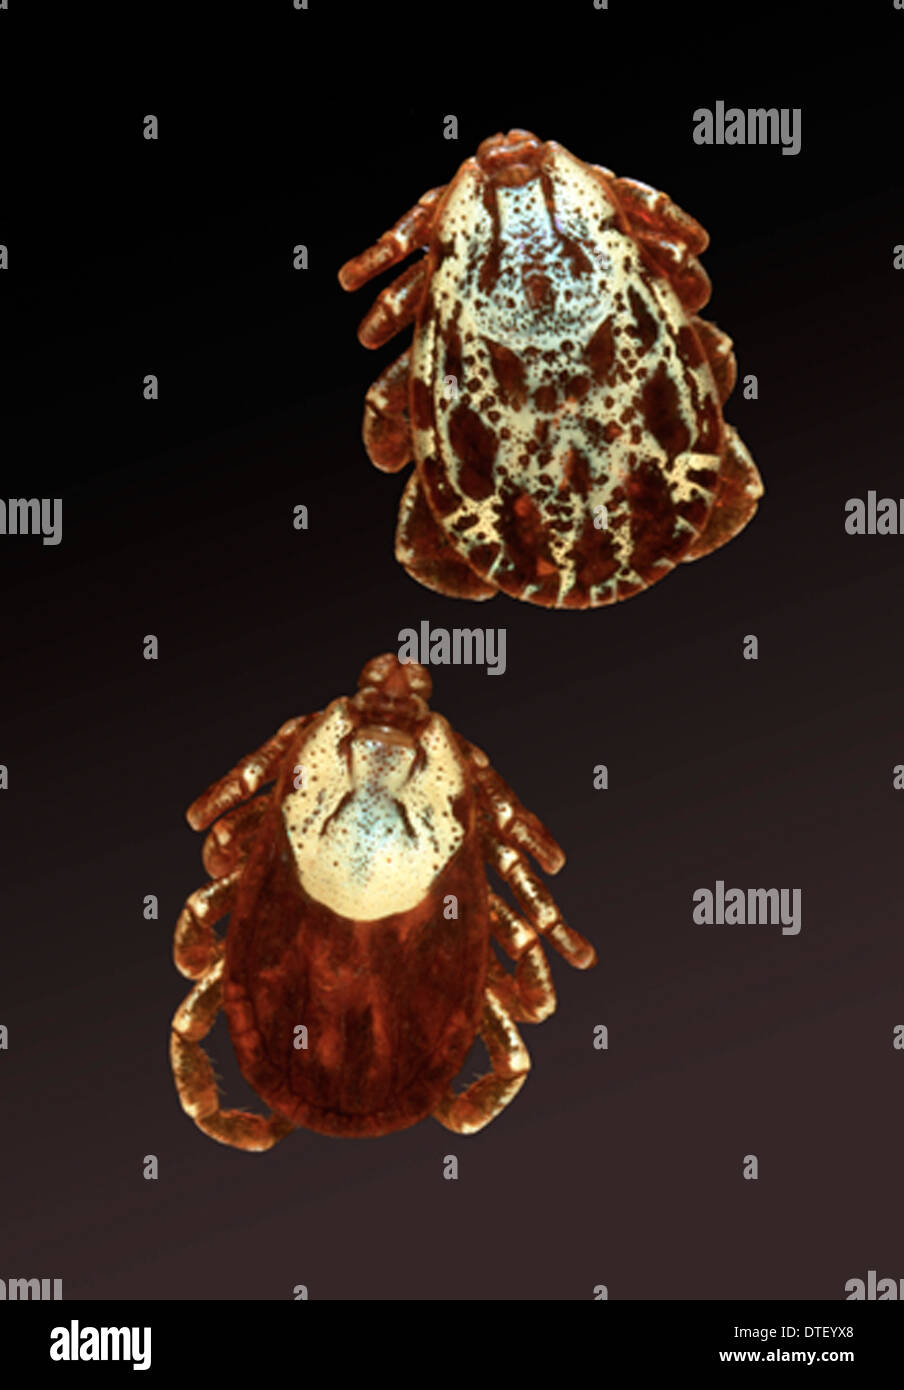 Dermacentor andersoni, Rocky Mountain wood tick - Stock Image